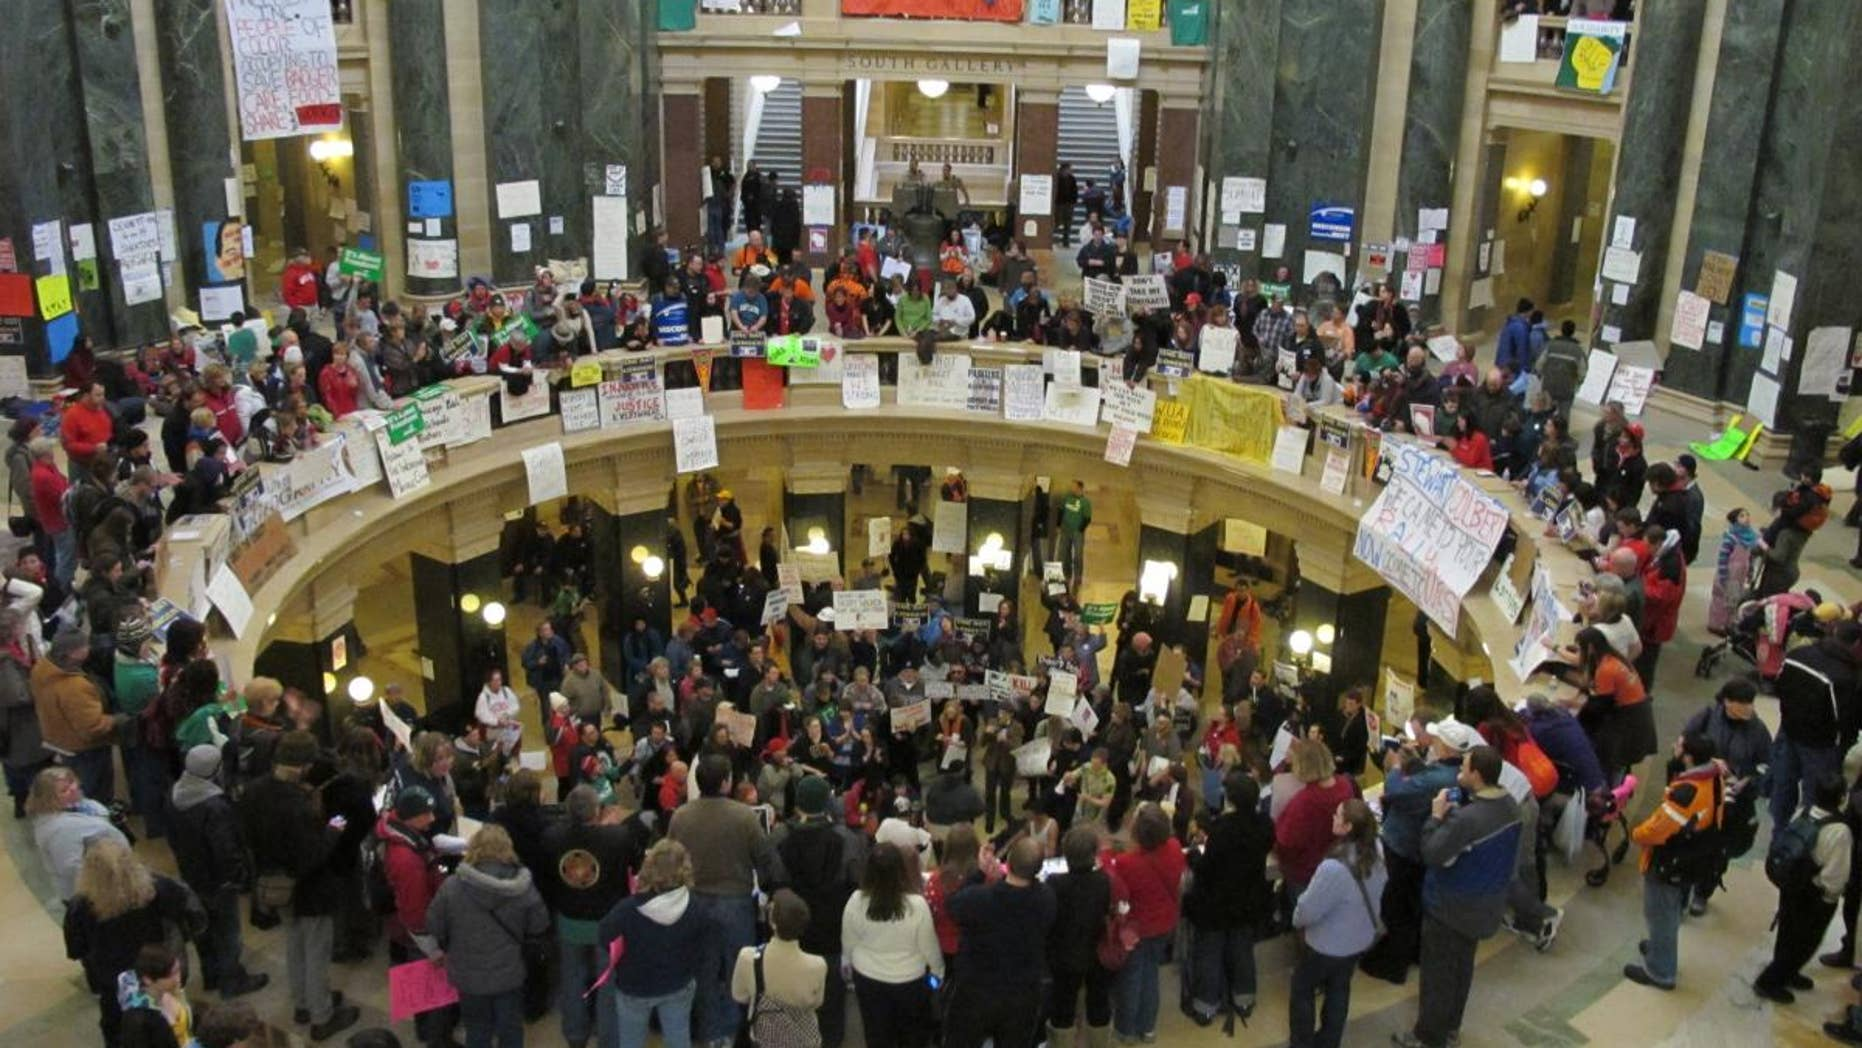 Protests inside the Wisconsin State Capitol in Madison.  (Fox News Photo)